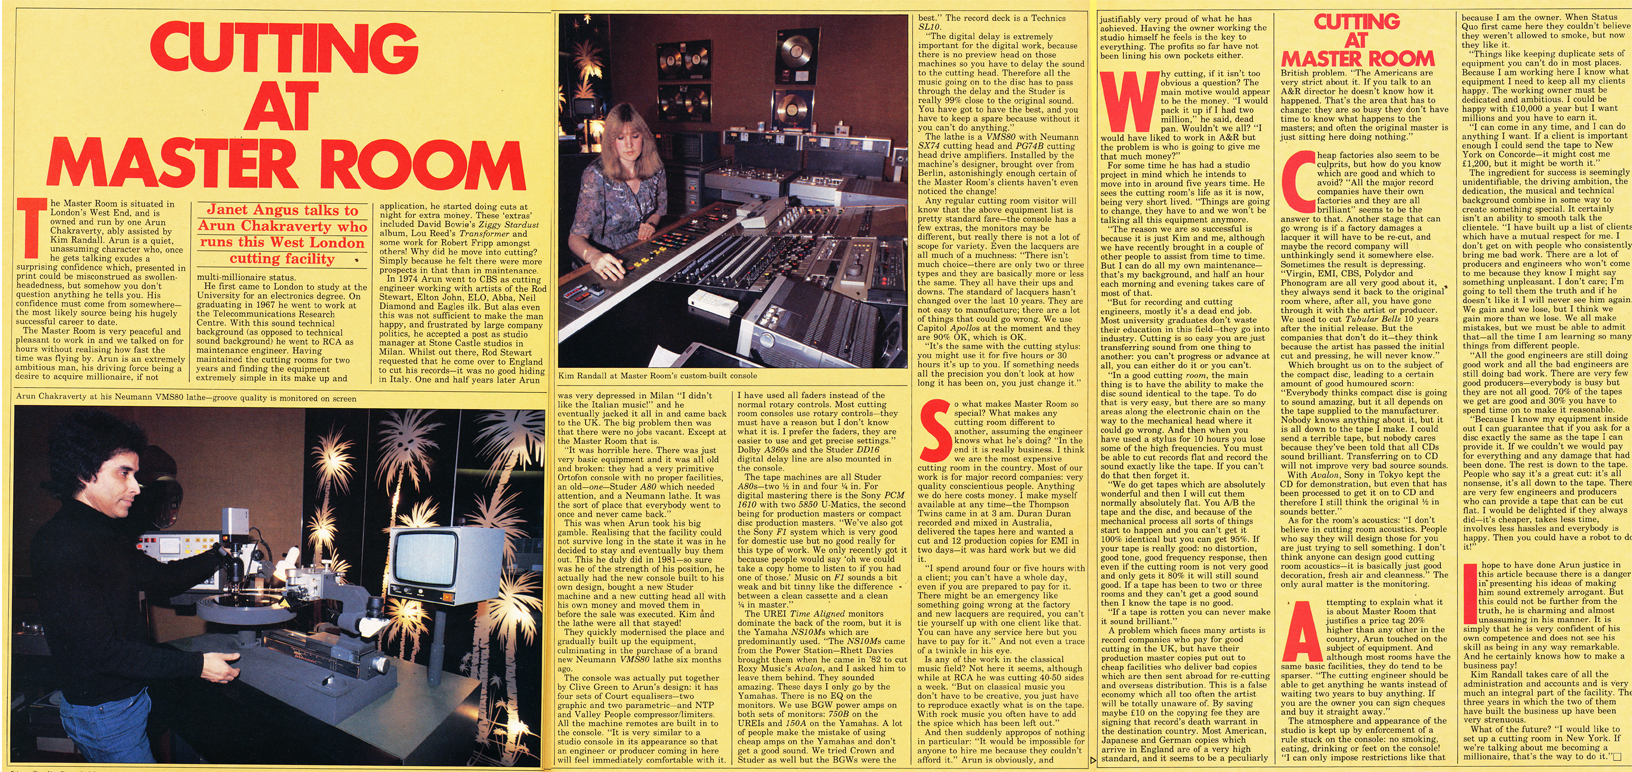 1985 article on Cutting at Master Room